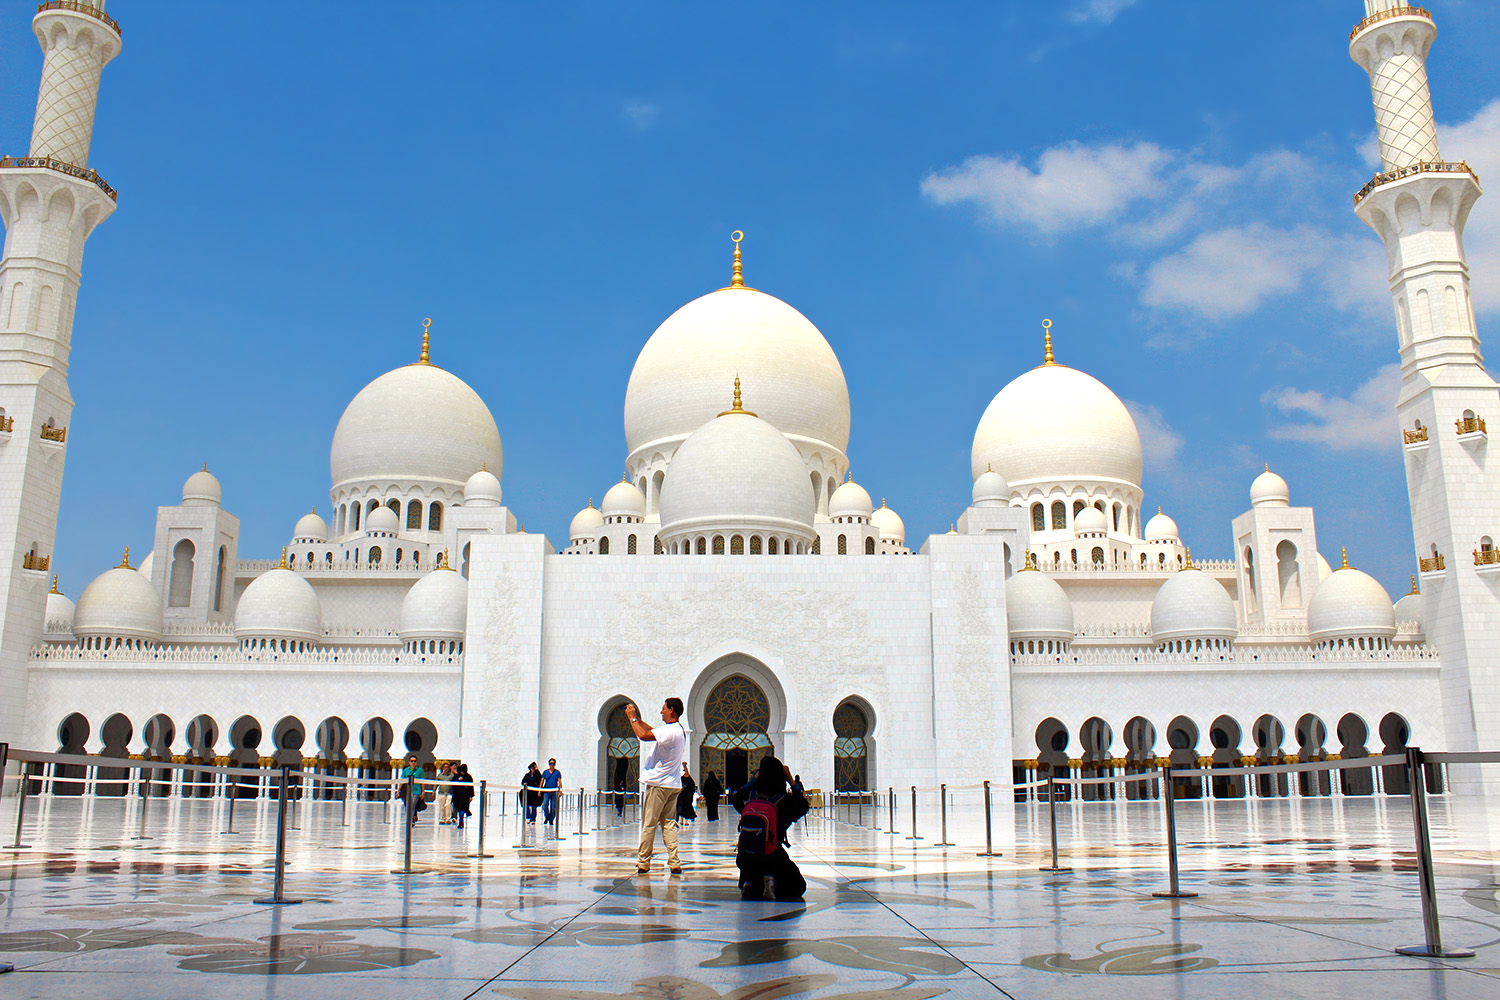 The Sheikh Zayed Mosque in Abu Dhabi